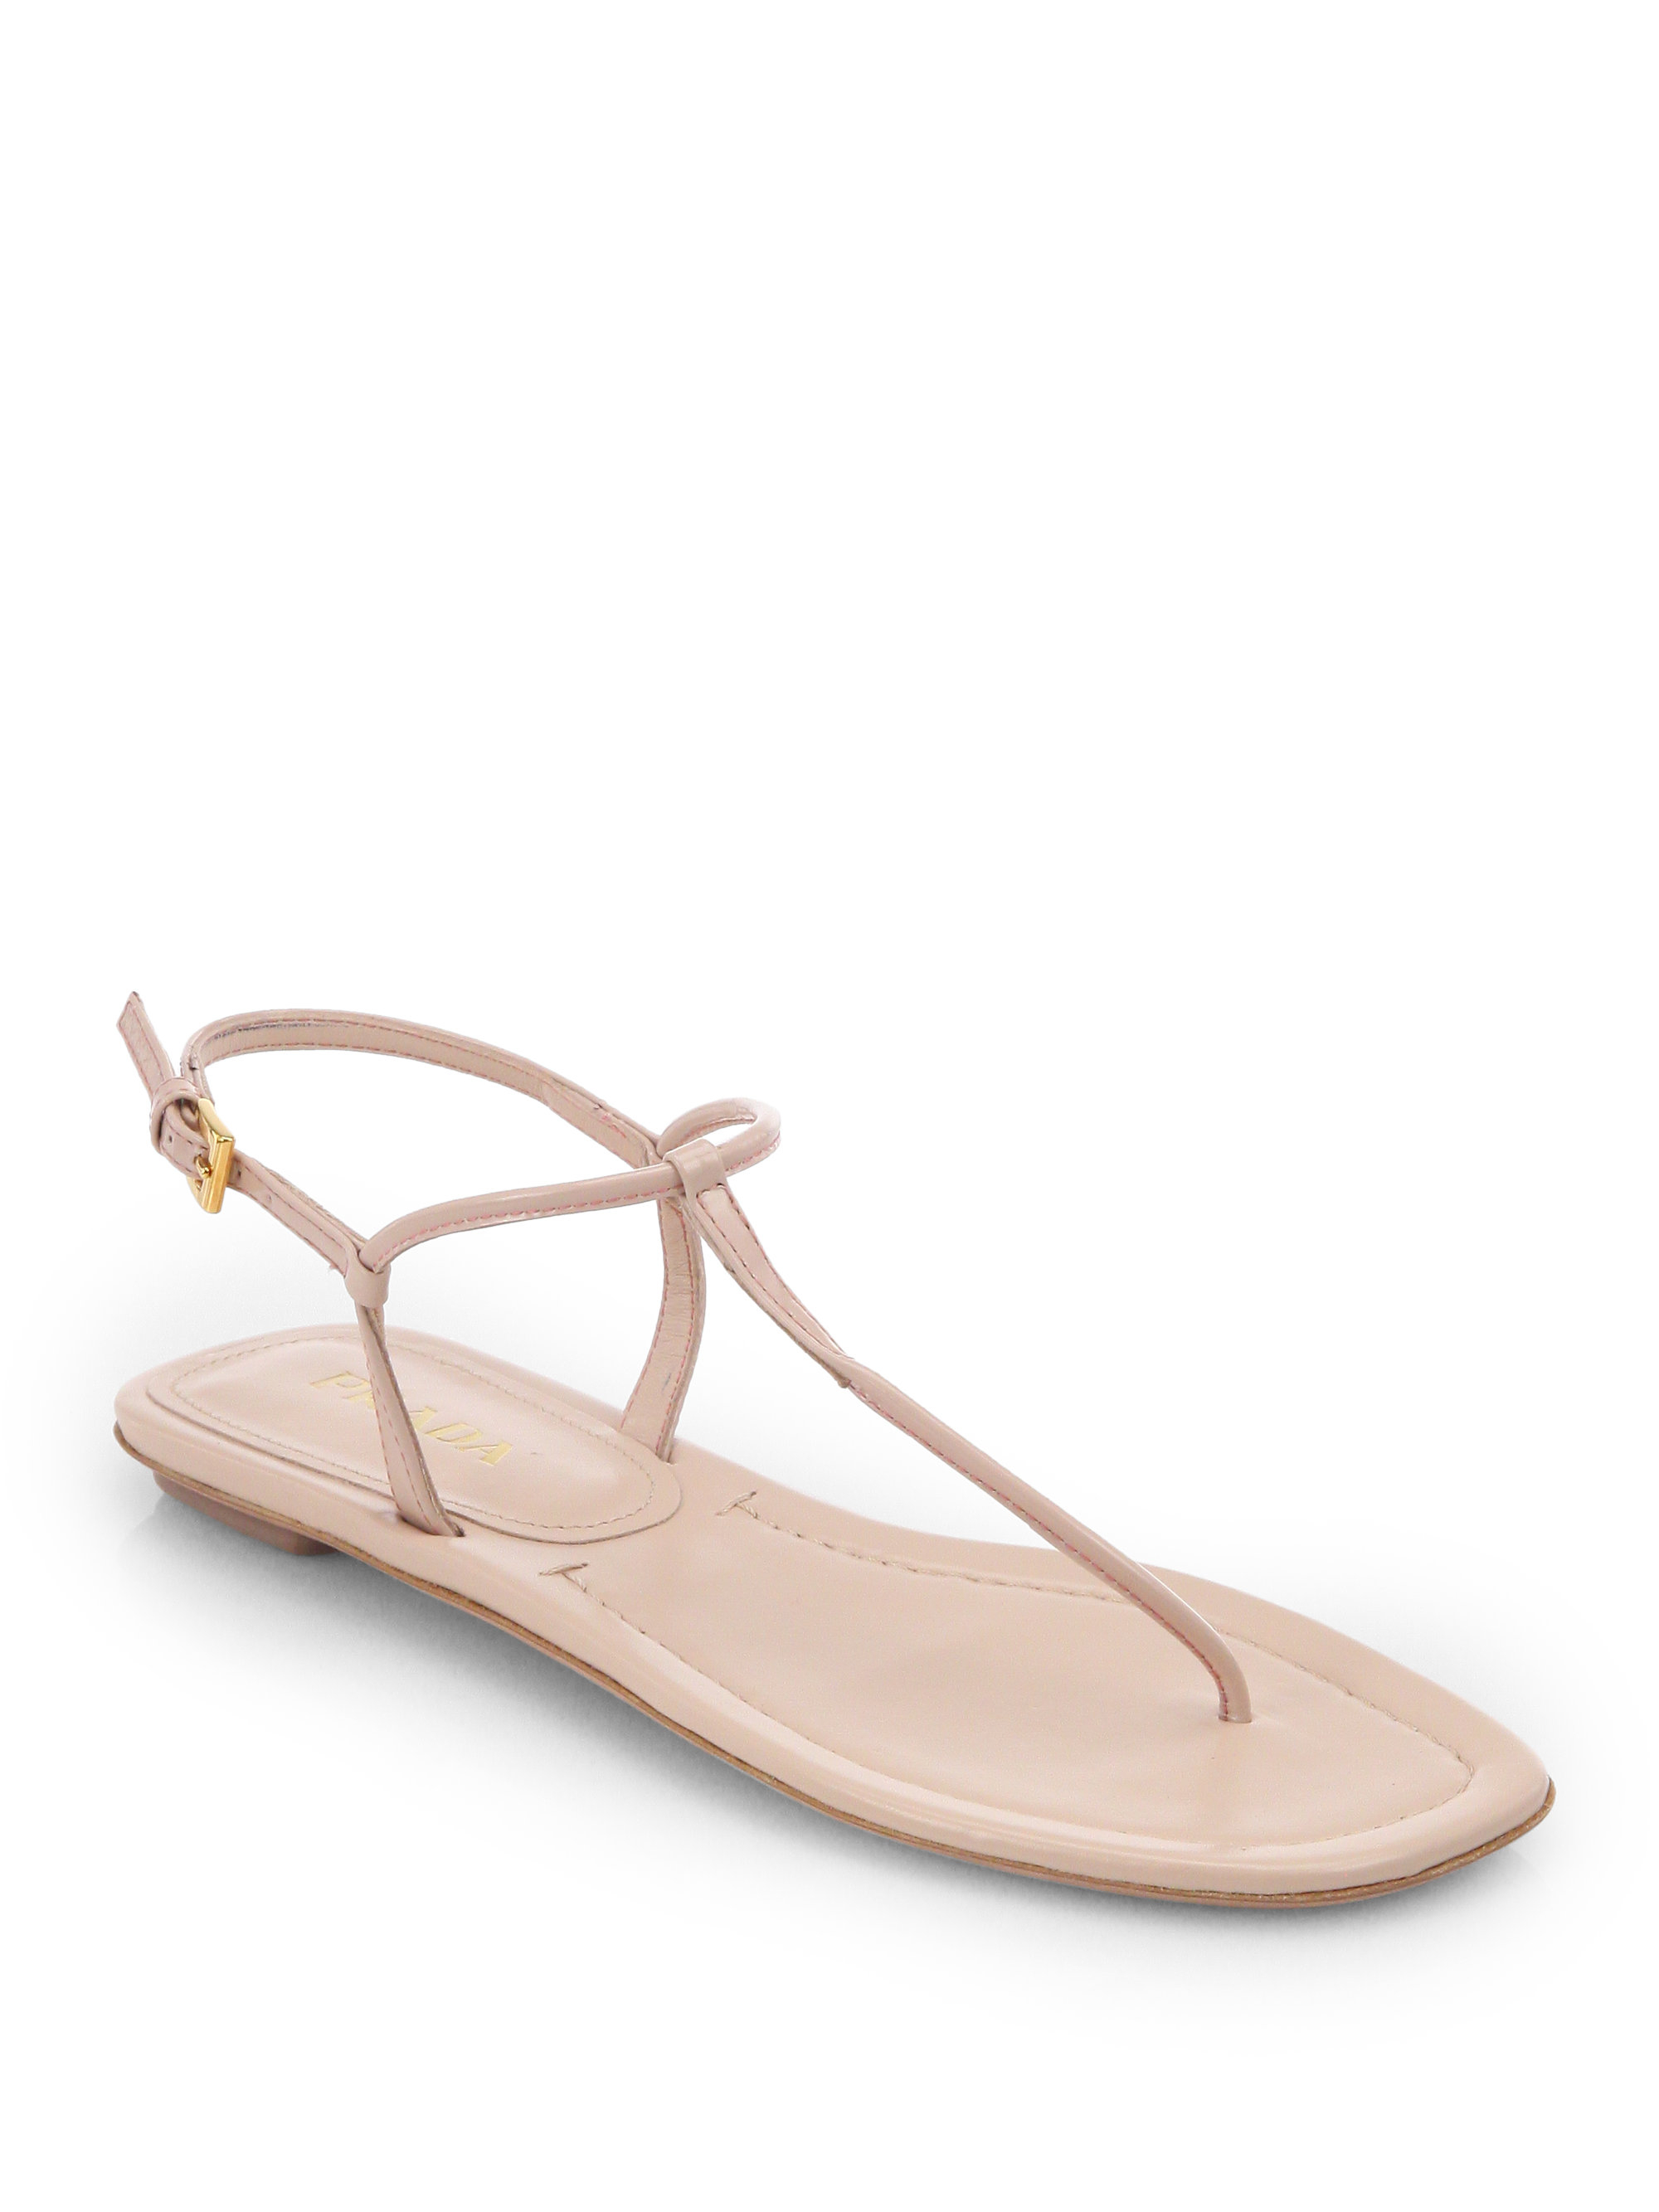 7bfbb32d4ad2ef Lyst - Prada Patent Leather Thong Sandals in Pink